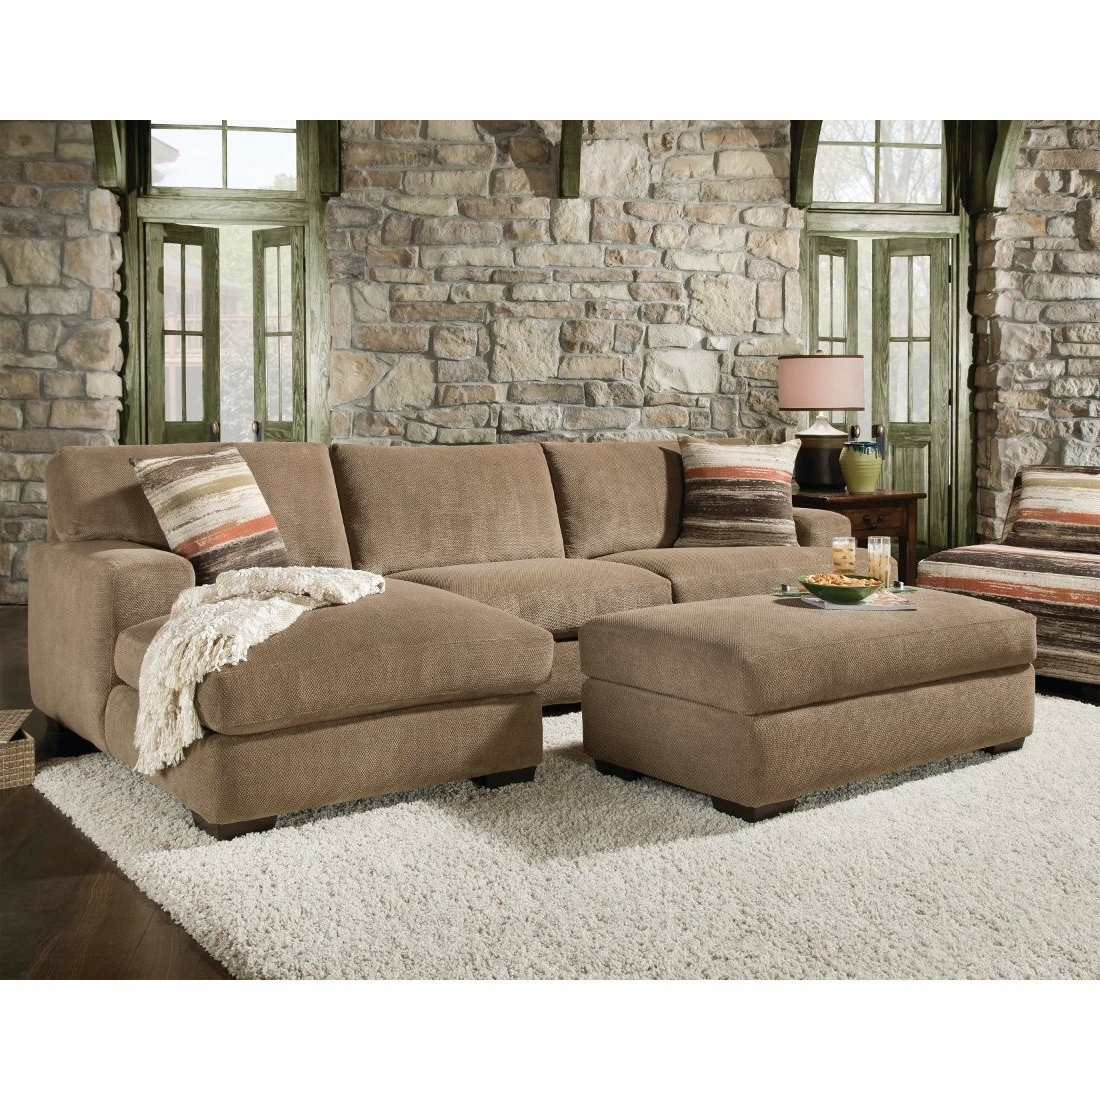 Most Recent Beautiful Sectional Sofa With Chaise And Ottoman Pictures With Regard To Microfiber Sectionals With Chaise (View 1 of 15)